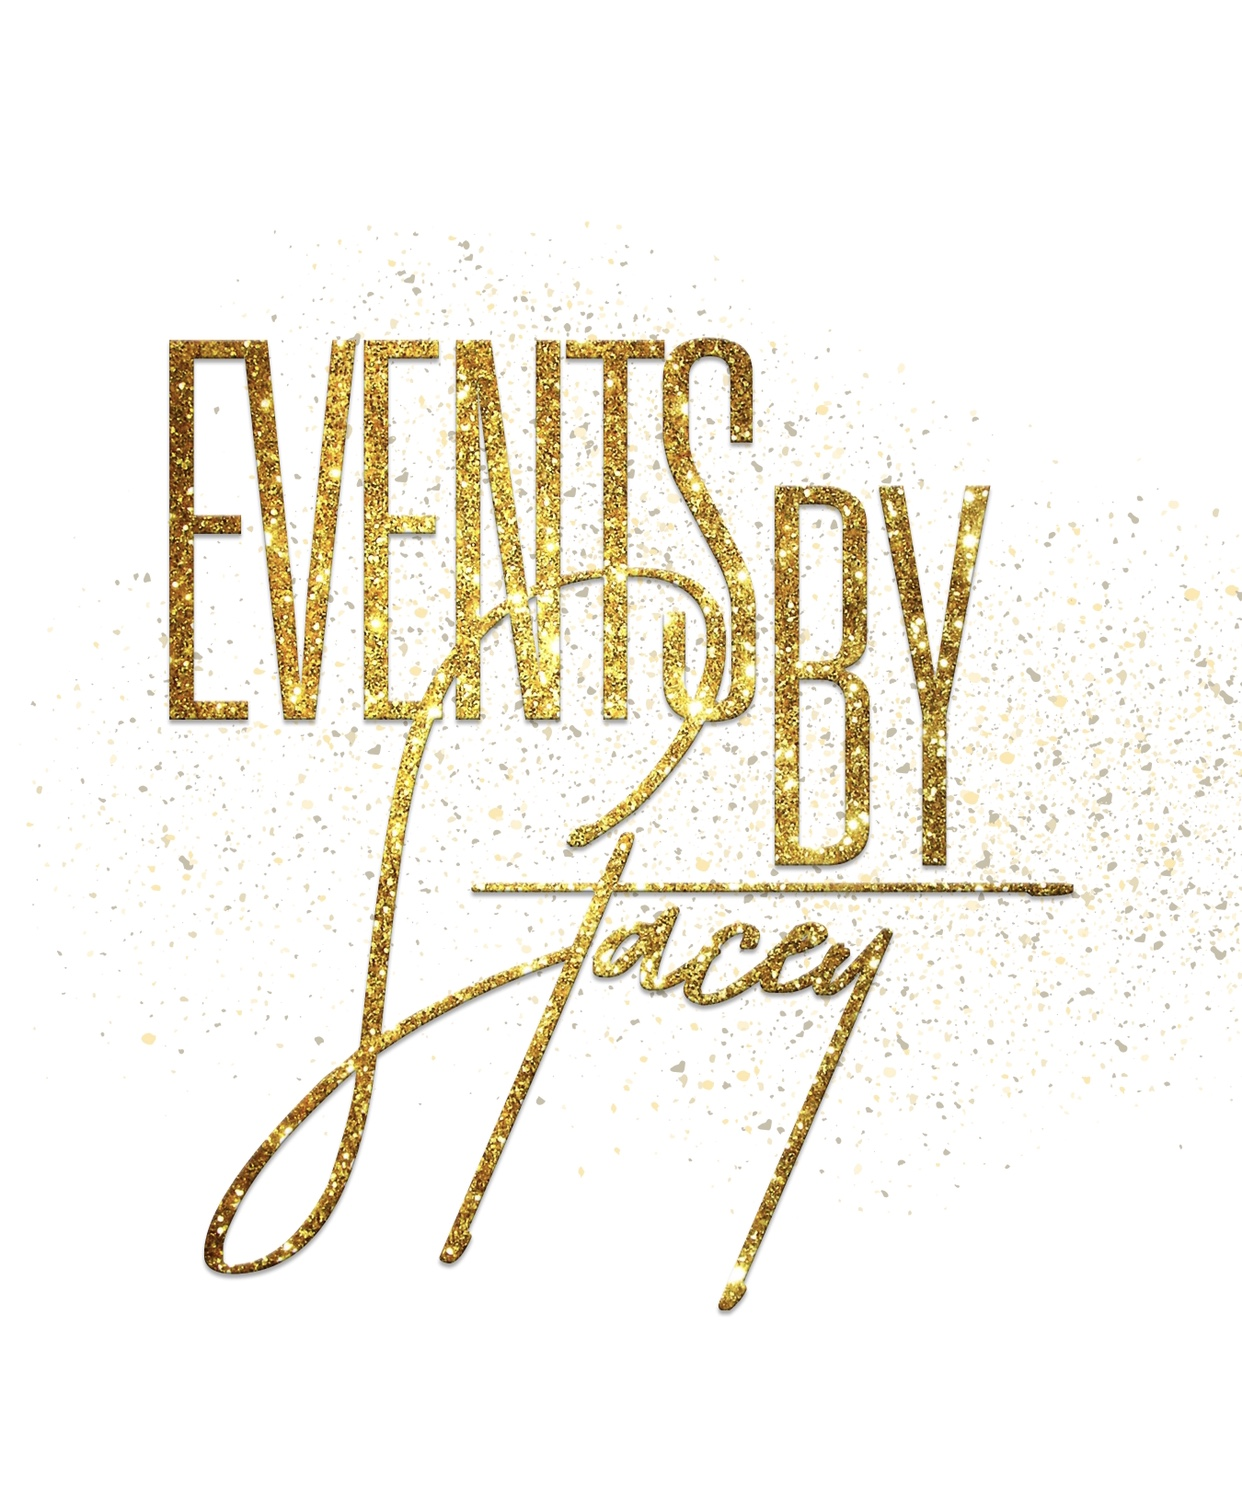 Events by Stacey